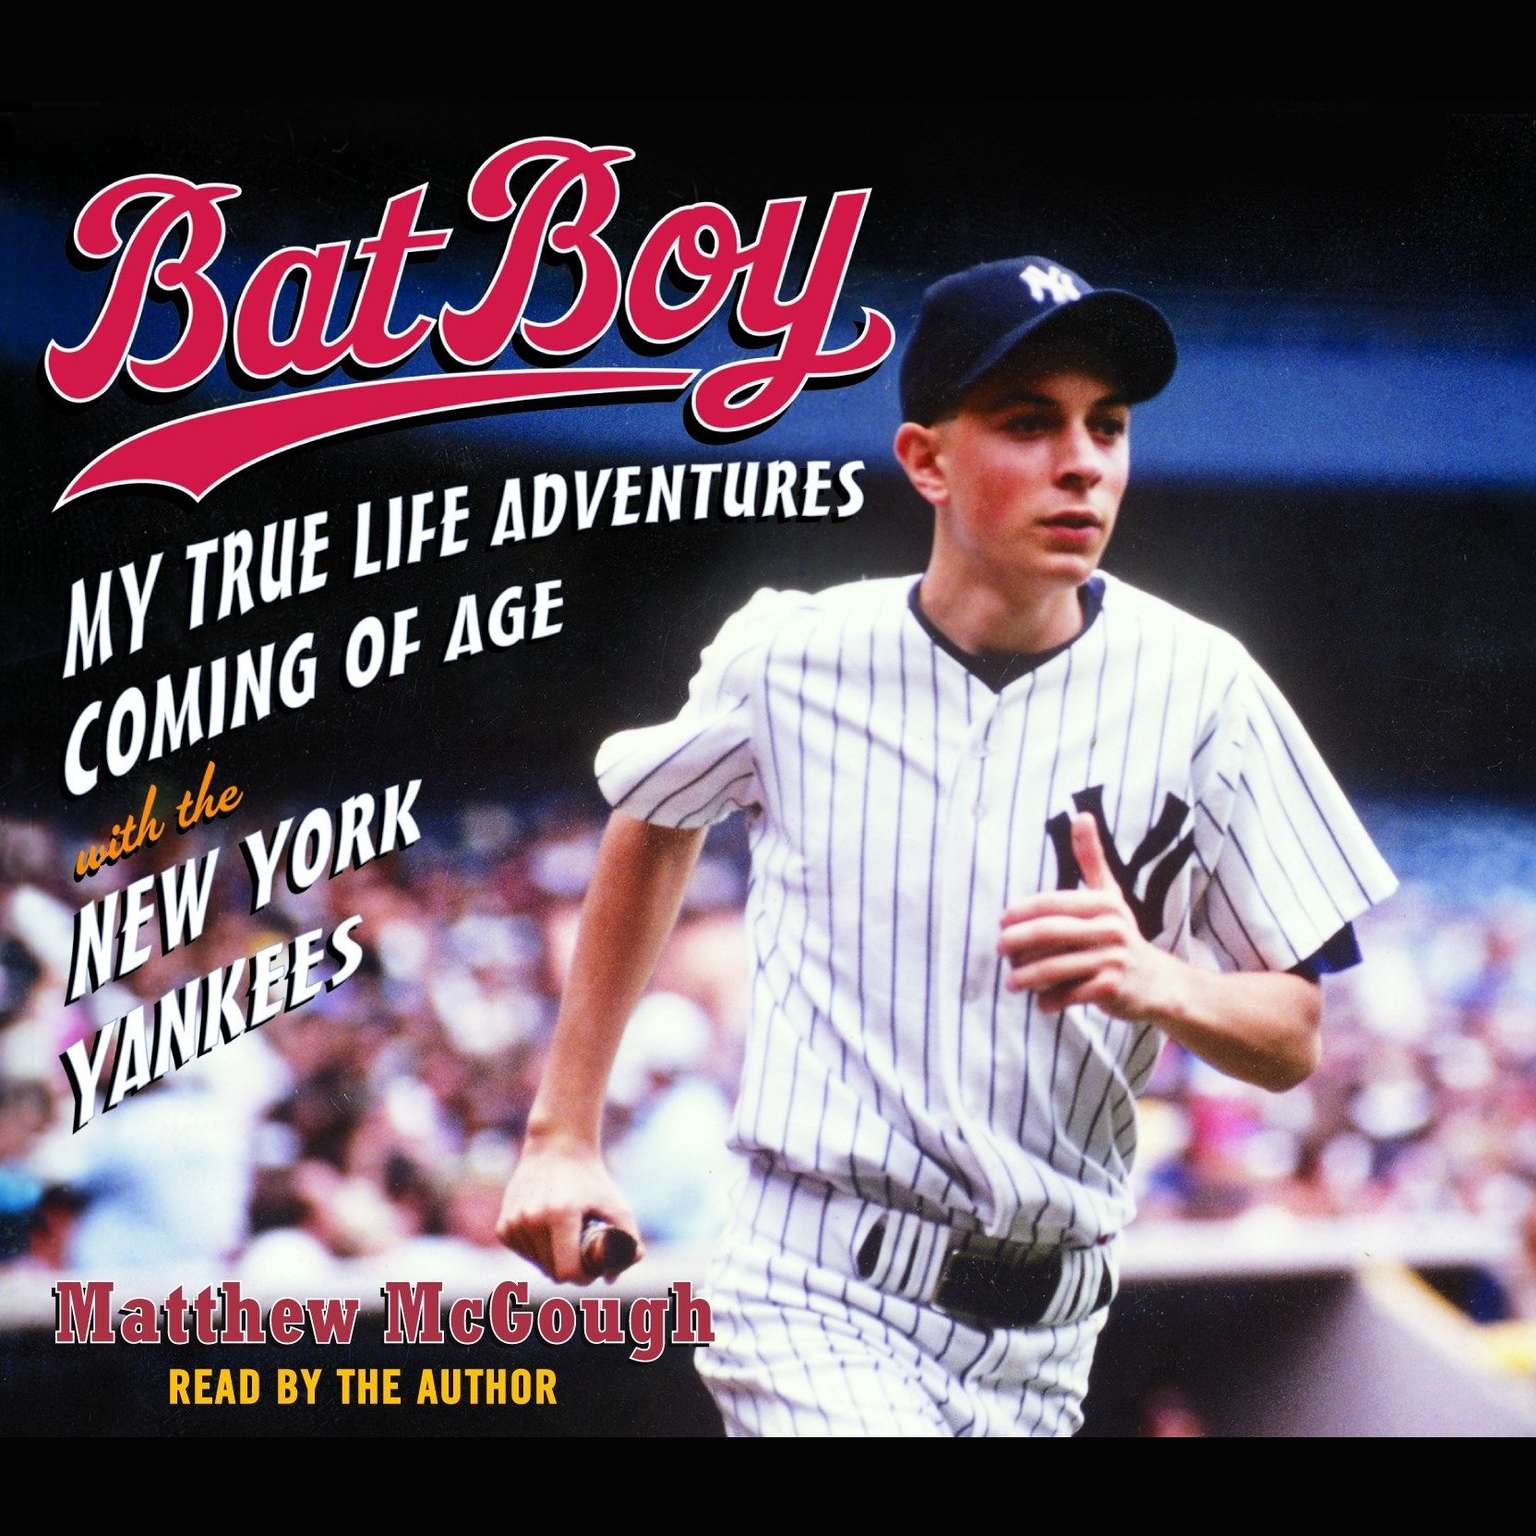 Printable Bat Boy: My True Life Adventures Coming of Age with the New York Yankees Audiobook Cover Art